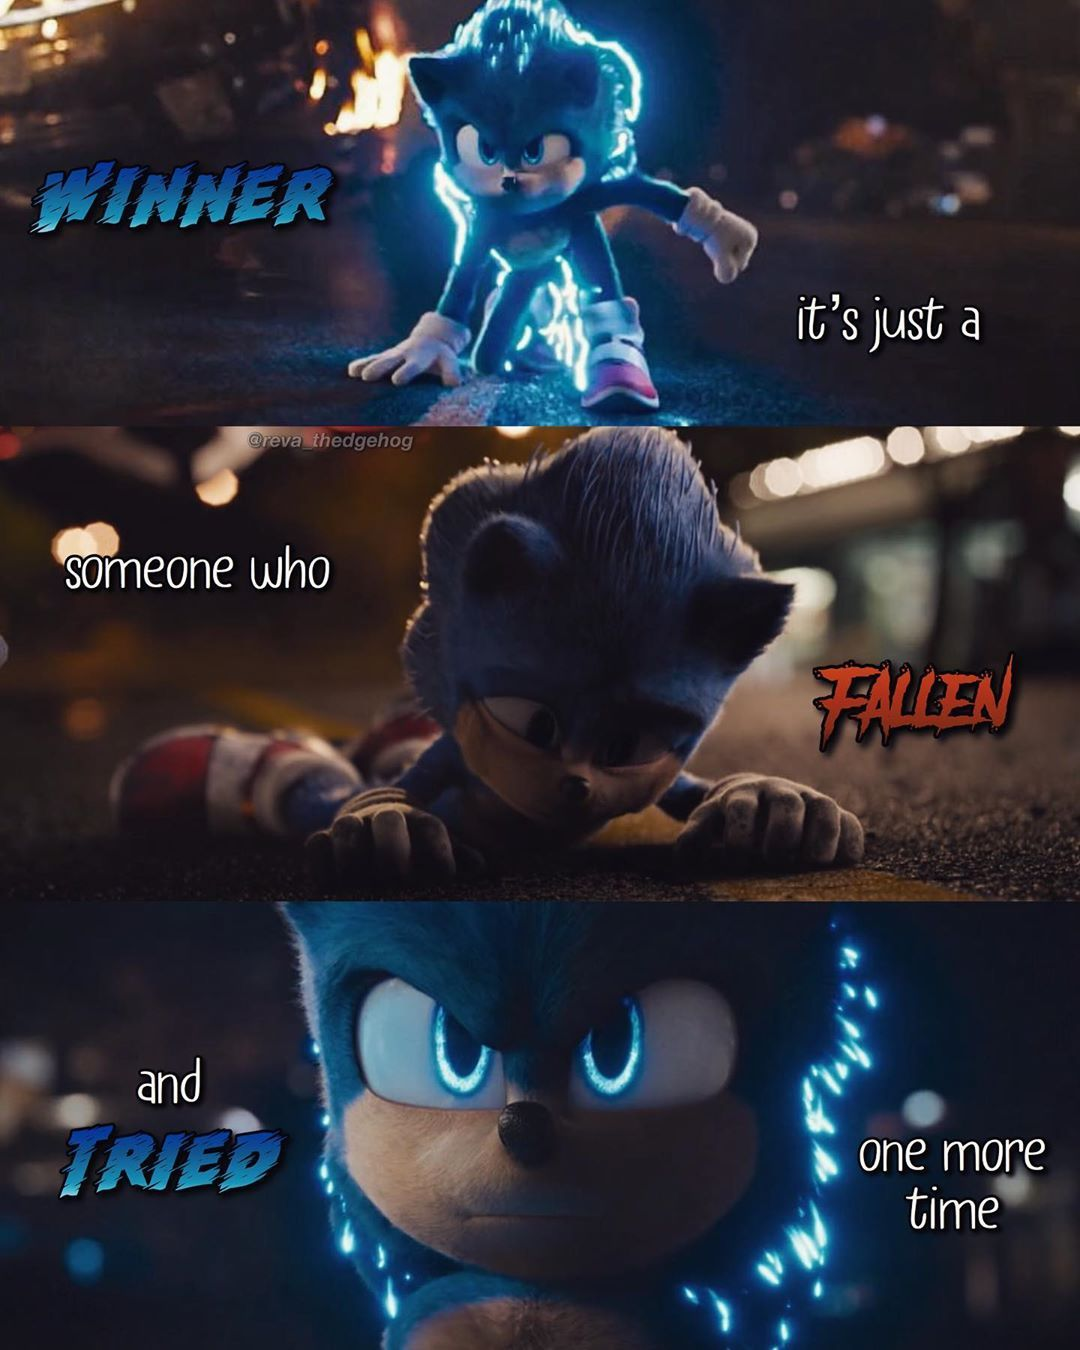 Rᴇᴠᴀ Tʜᴇ Hᴇᴅɢᴇʜᴏɢ I 3 7k On Instagram S Post Stand Up And Fight For What S Right Follow R Sonic The Movie Sonic The Hedgehog Sonic Fan Characters